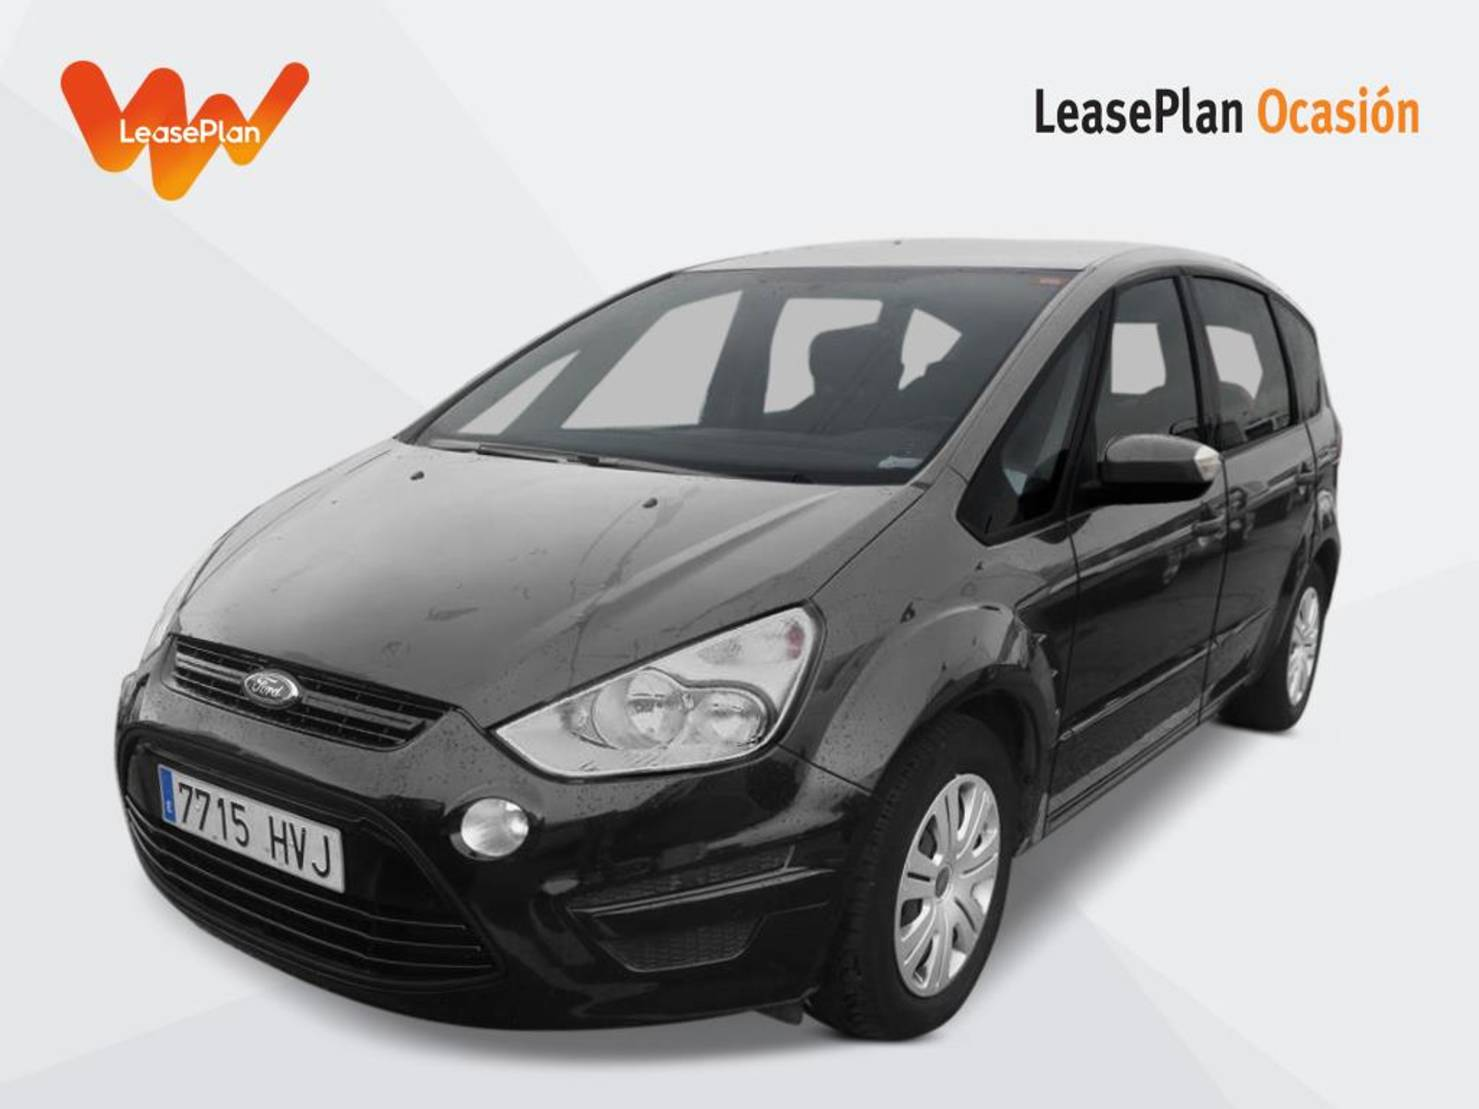 Ford S-Max 2.0 Tdci 140cvTrend detail1